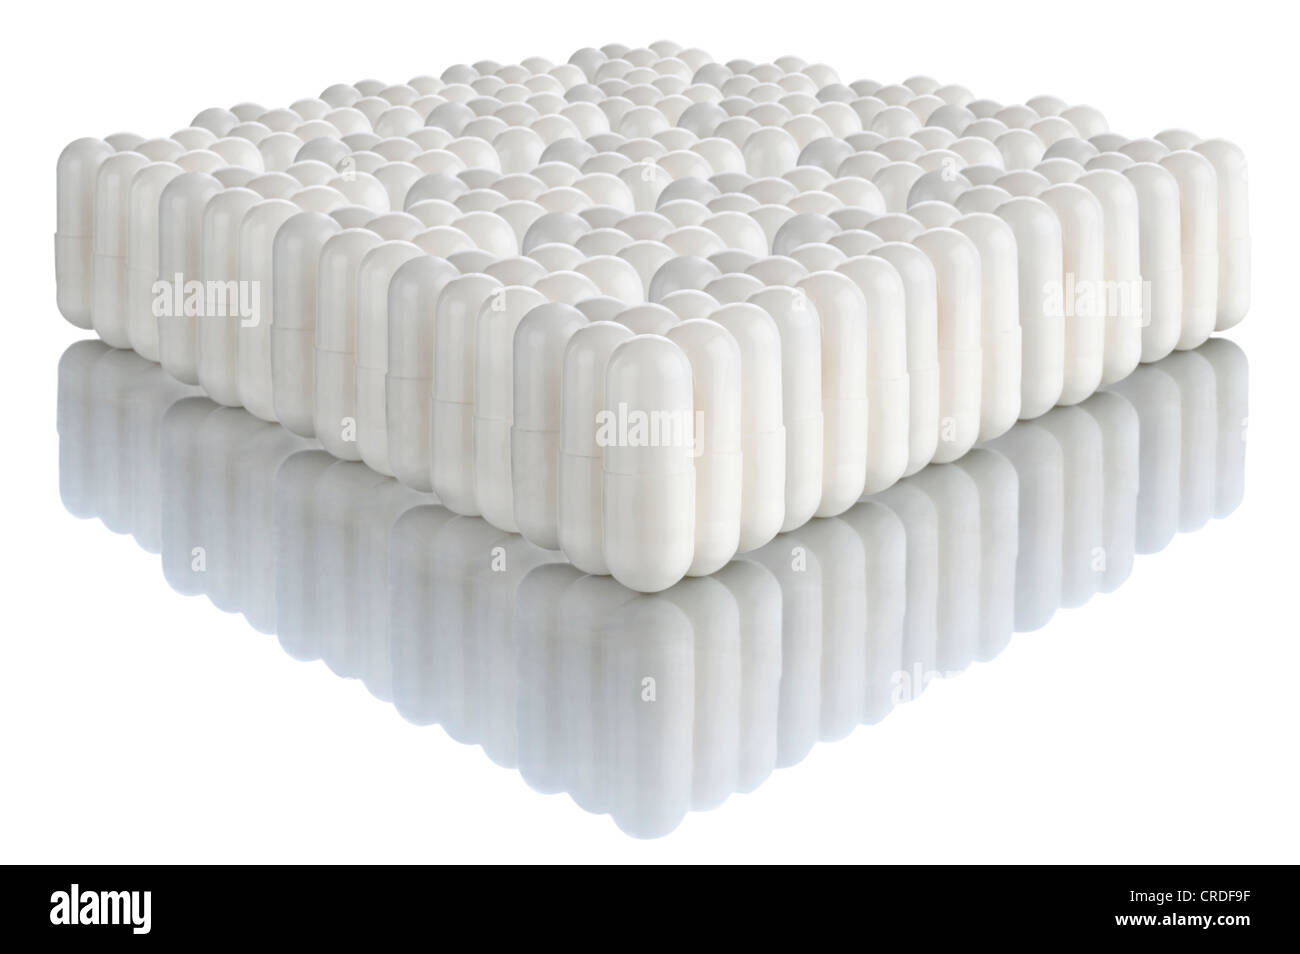 Multiple white capsules - Stock Image